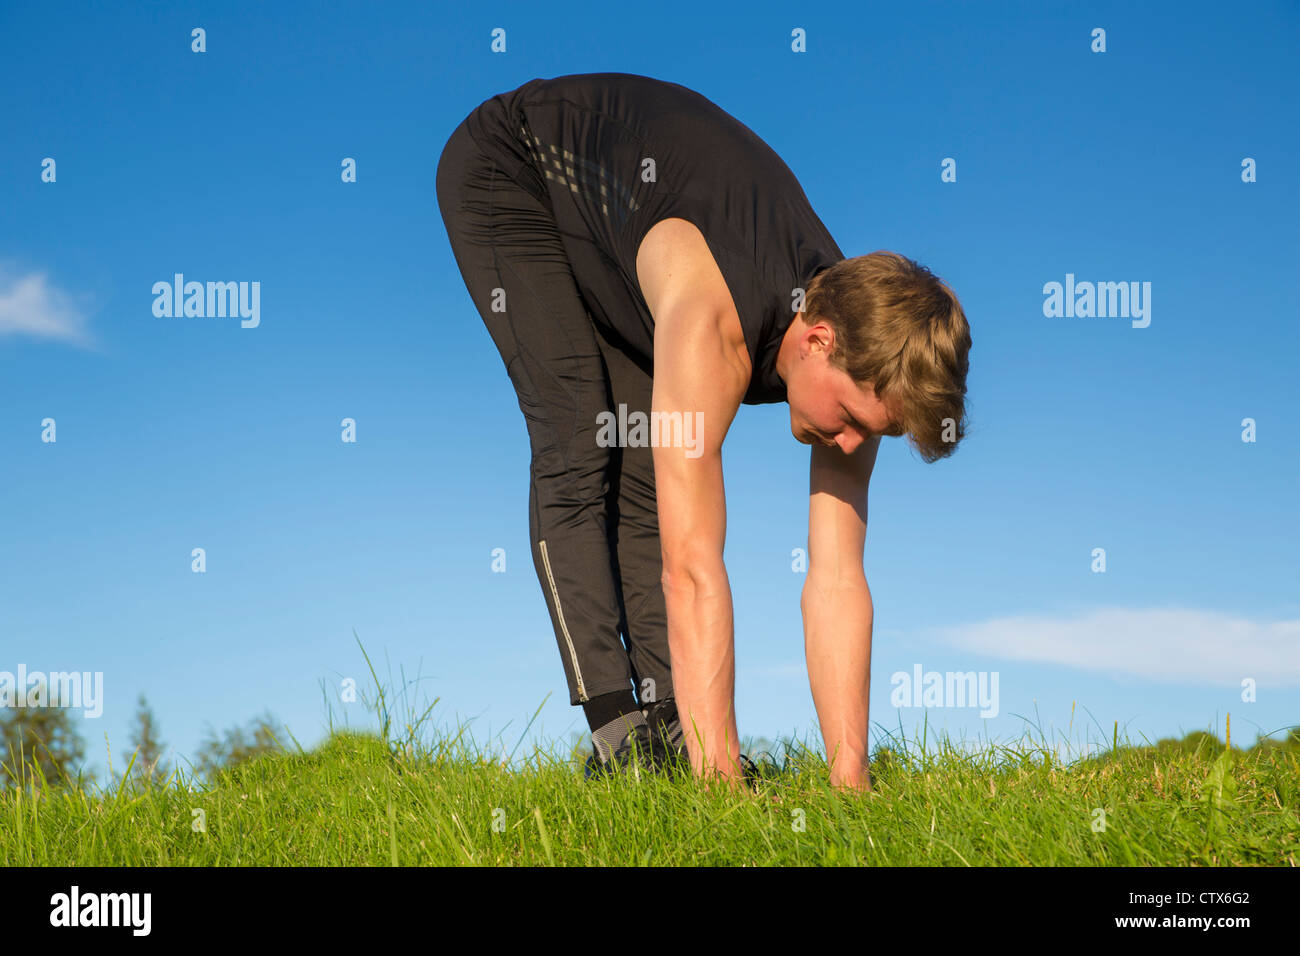 Sportsman making exercise movements to stretch its muscles - Stock Image